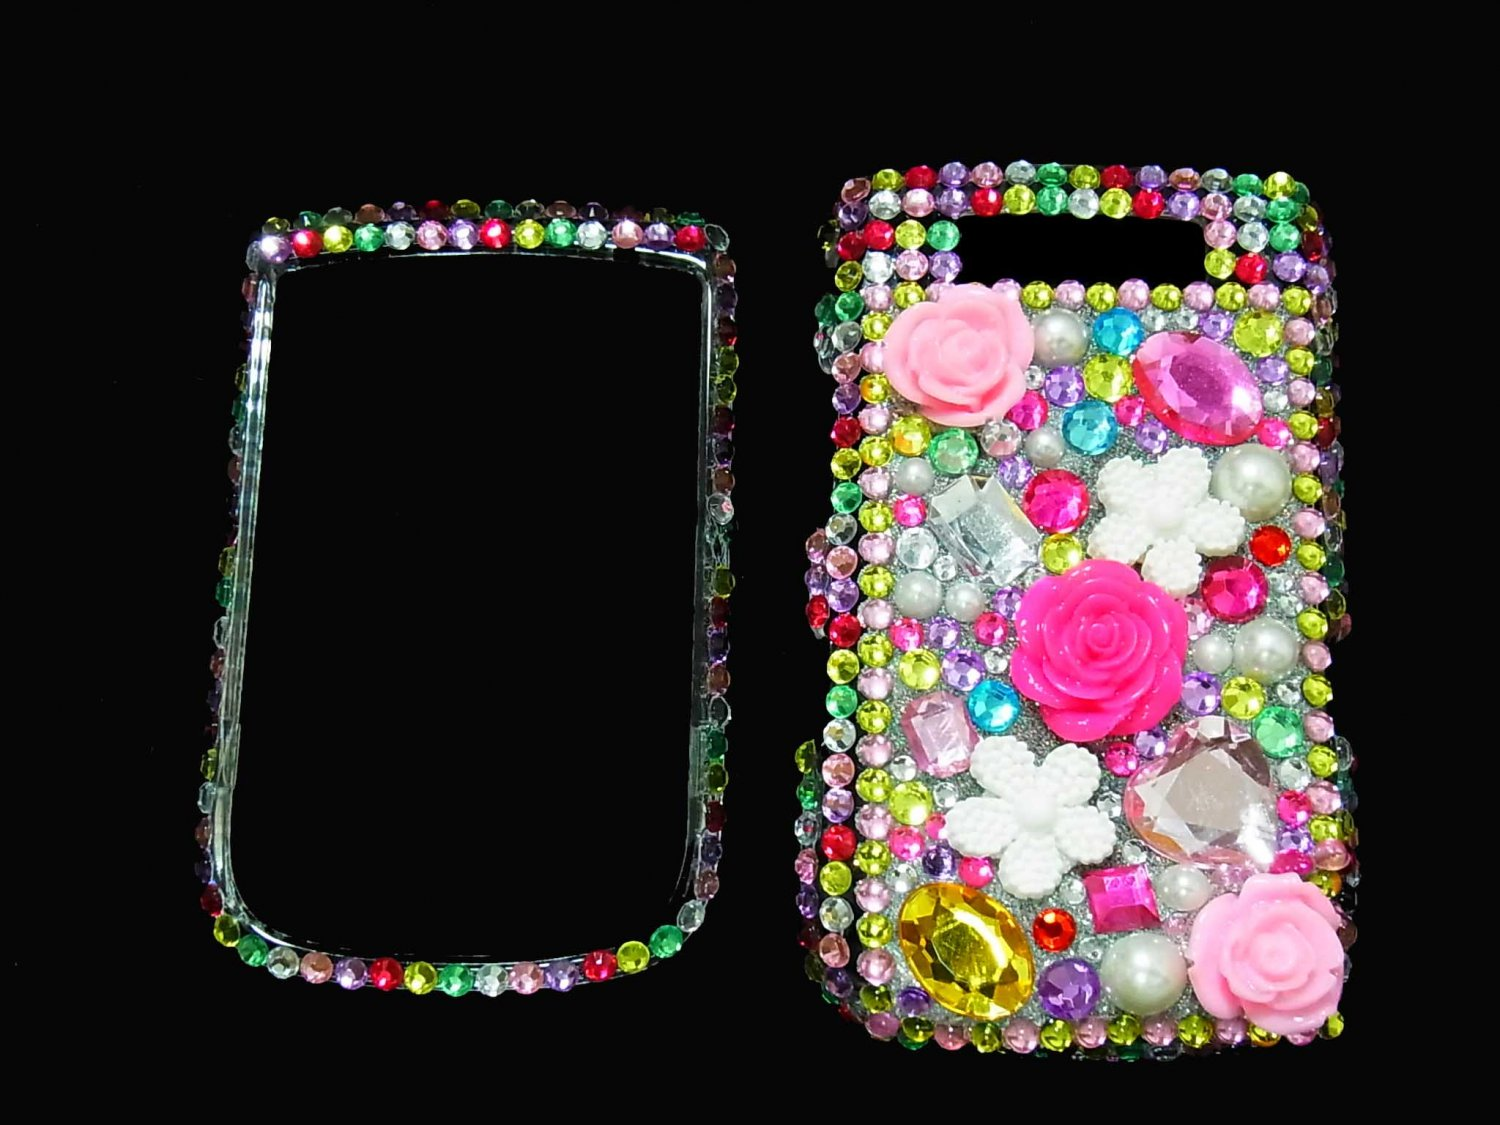 Bling Rhinestone Crystal Rainbow Flower Case Cover for Blackberry 9800 Torch RF